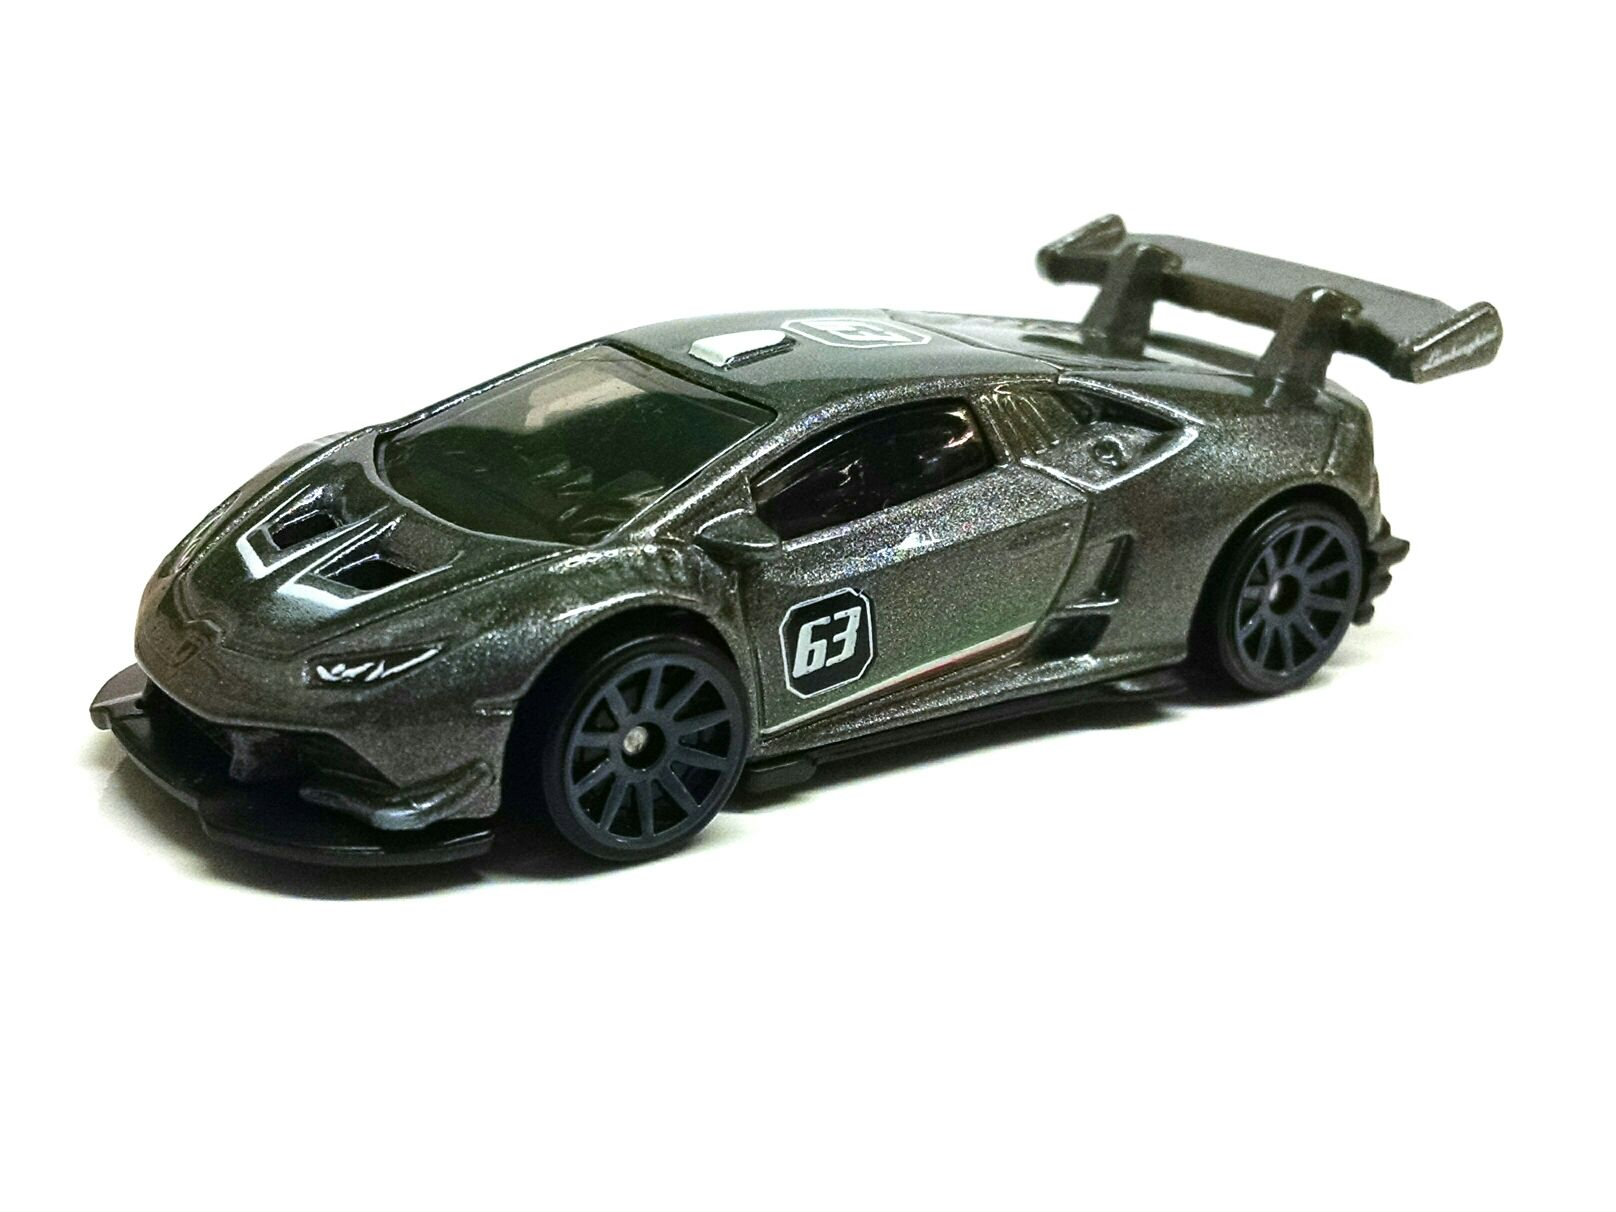 lamborghini huracan lp 620 2 super trofeo toy car die. Black Bedroom Furniture Sets. Home Design Ideas